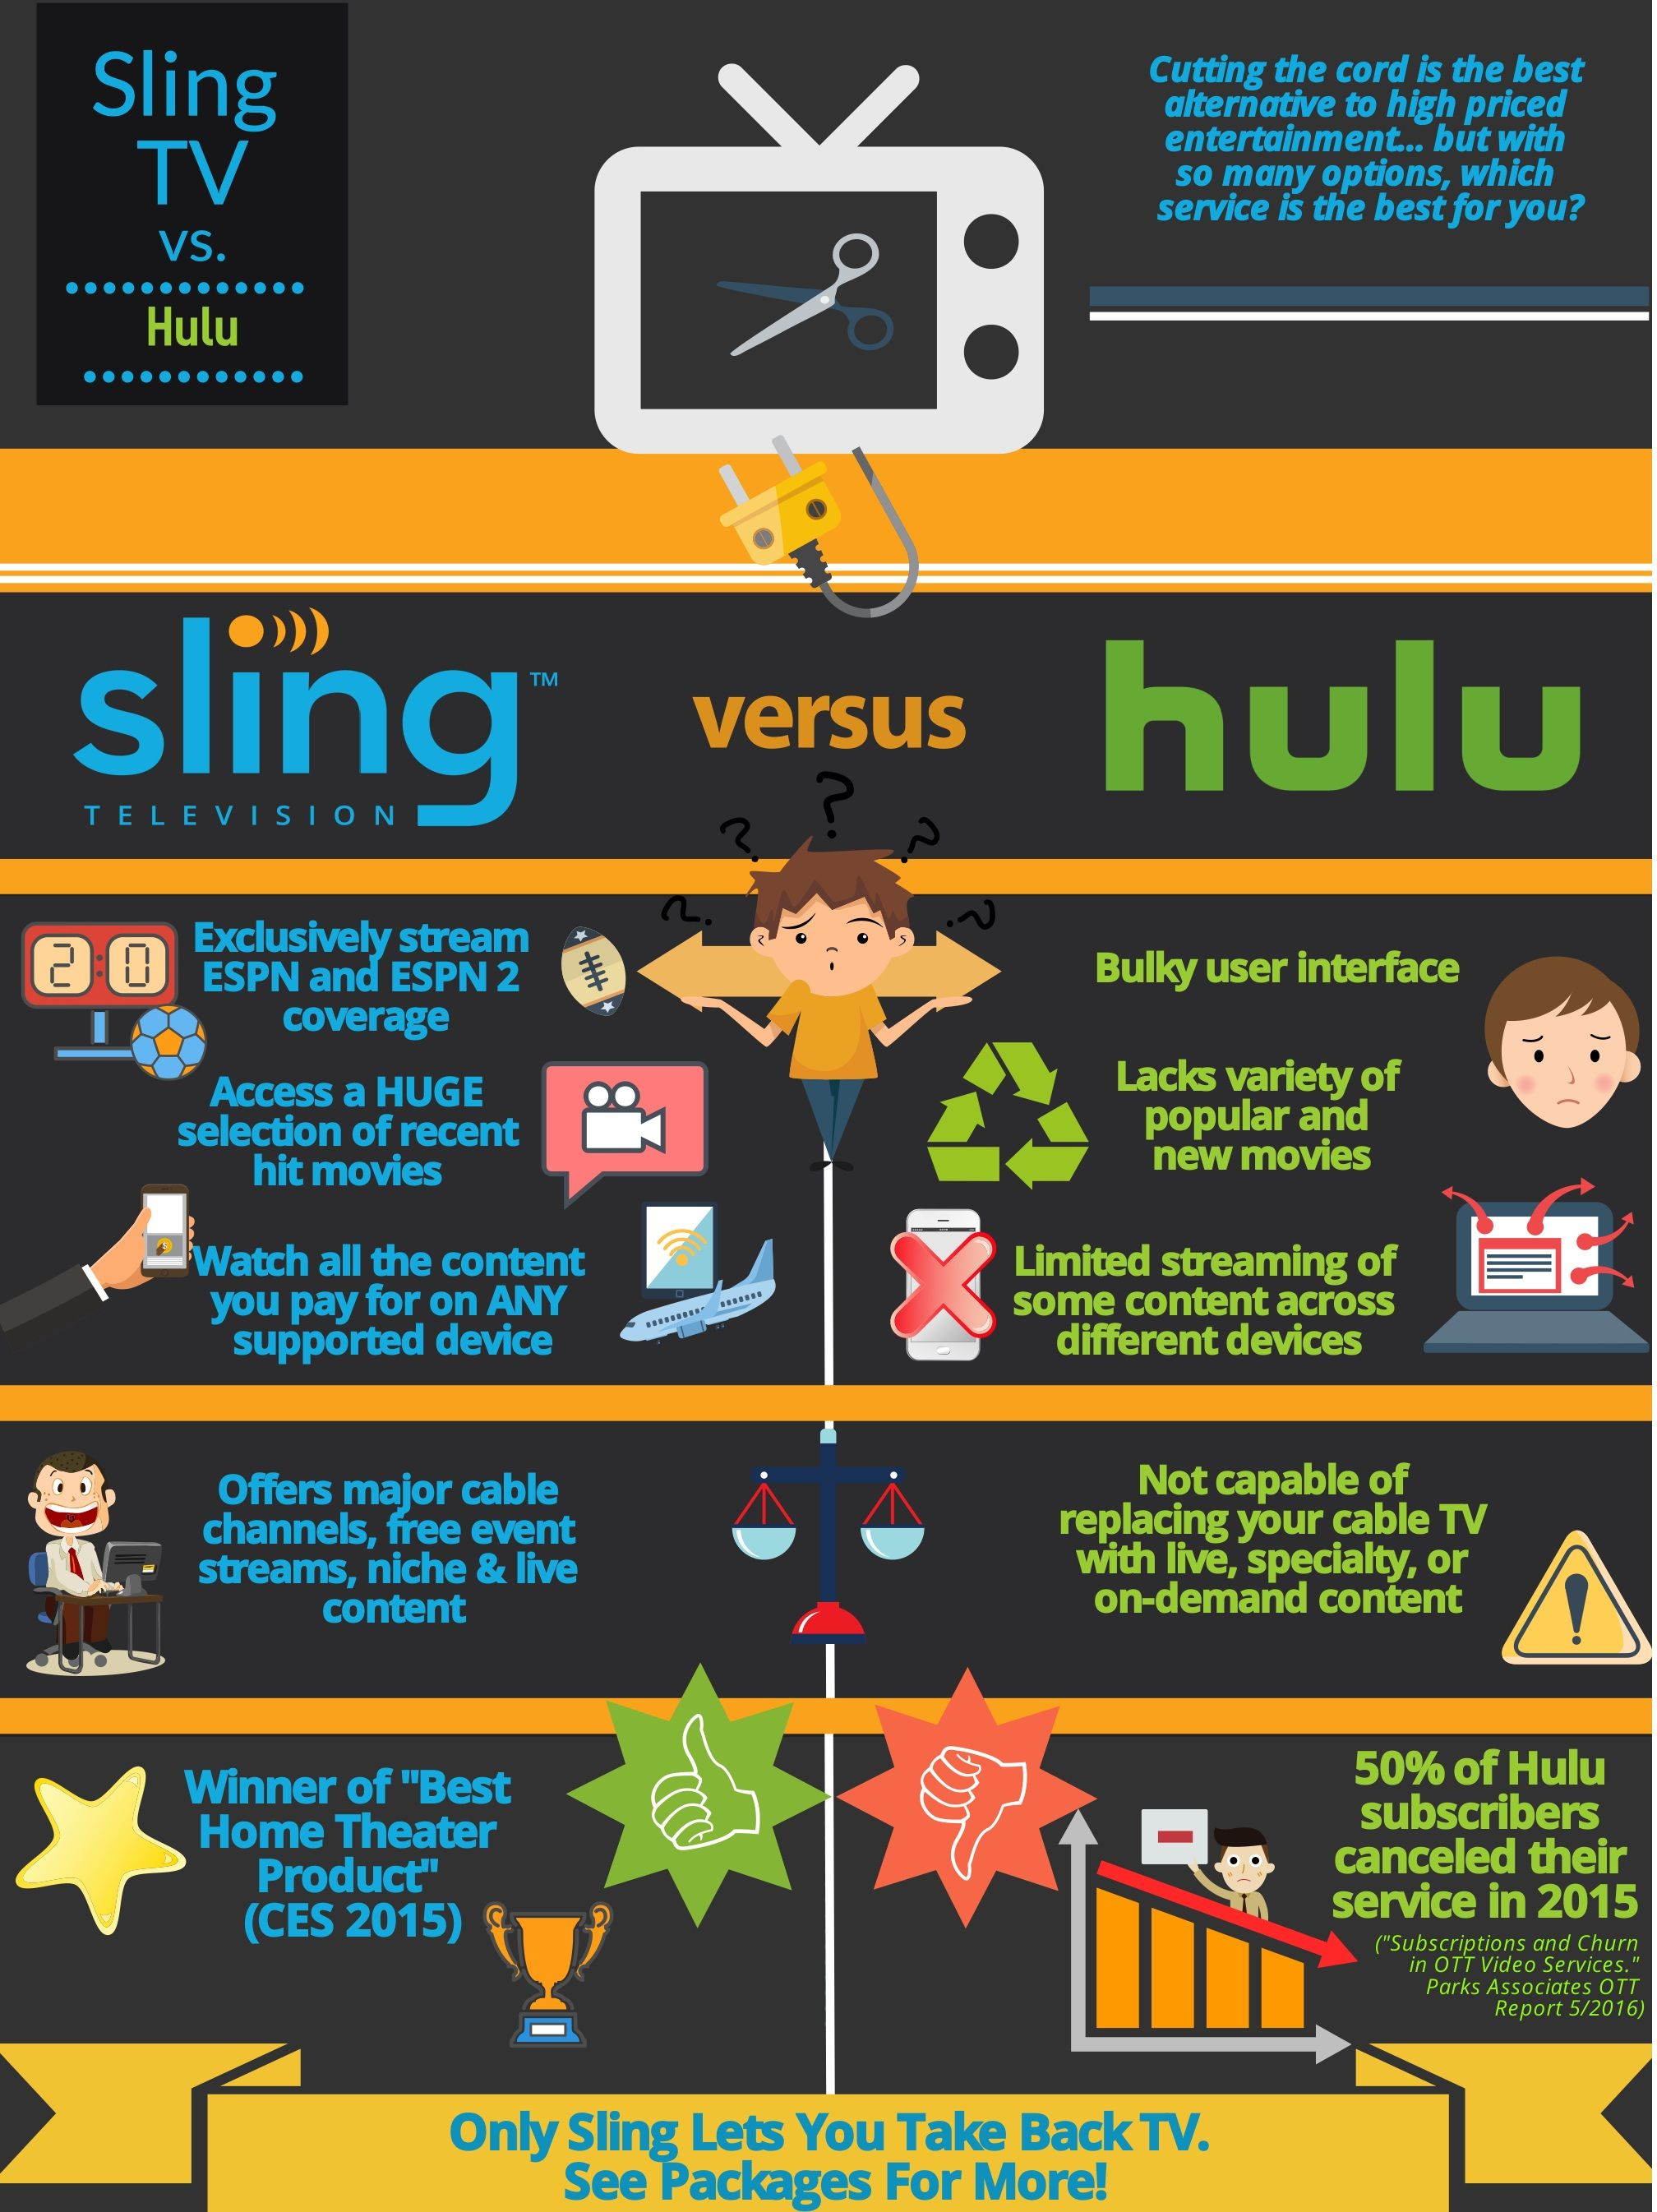 Sling Tv Vs Hulu Infographic I Created Mswrywrit Marketing Muse